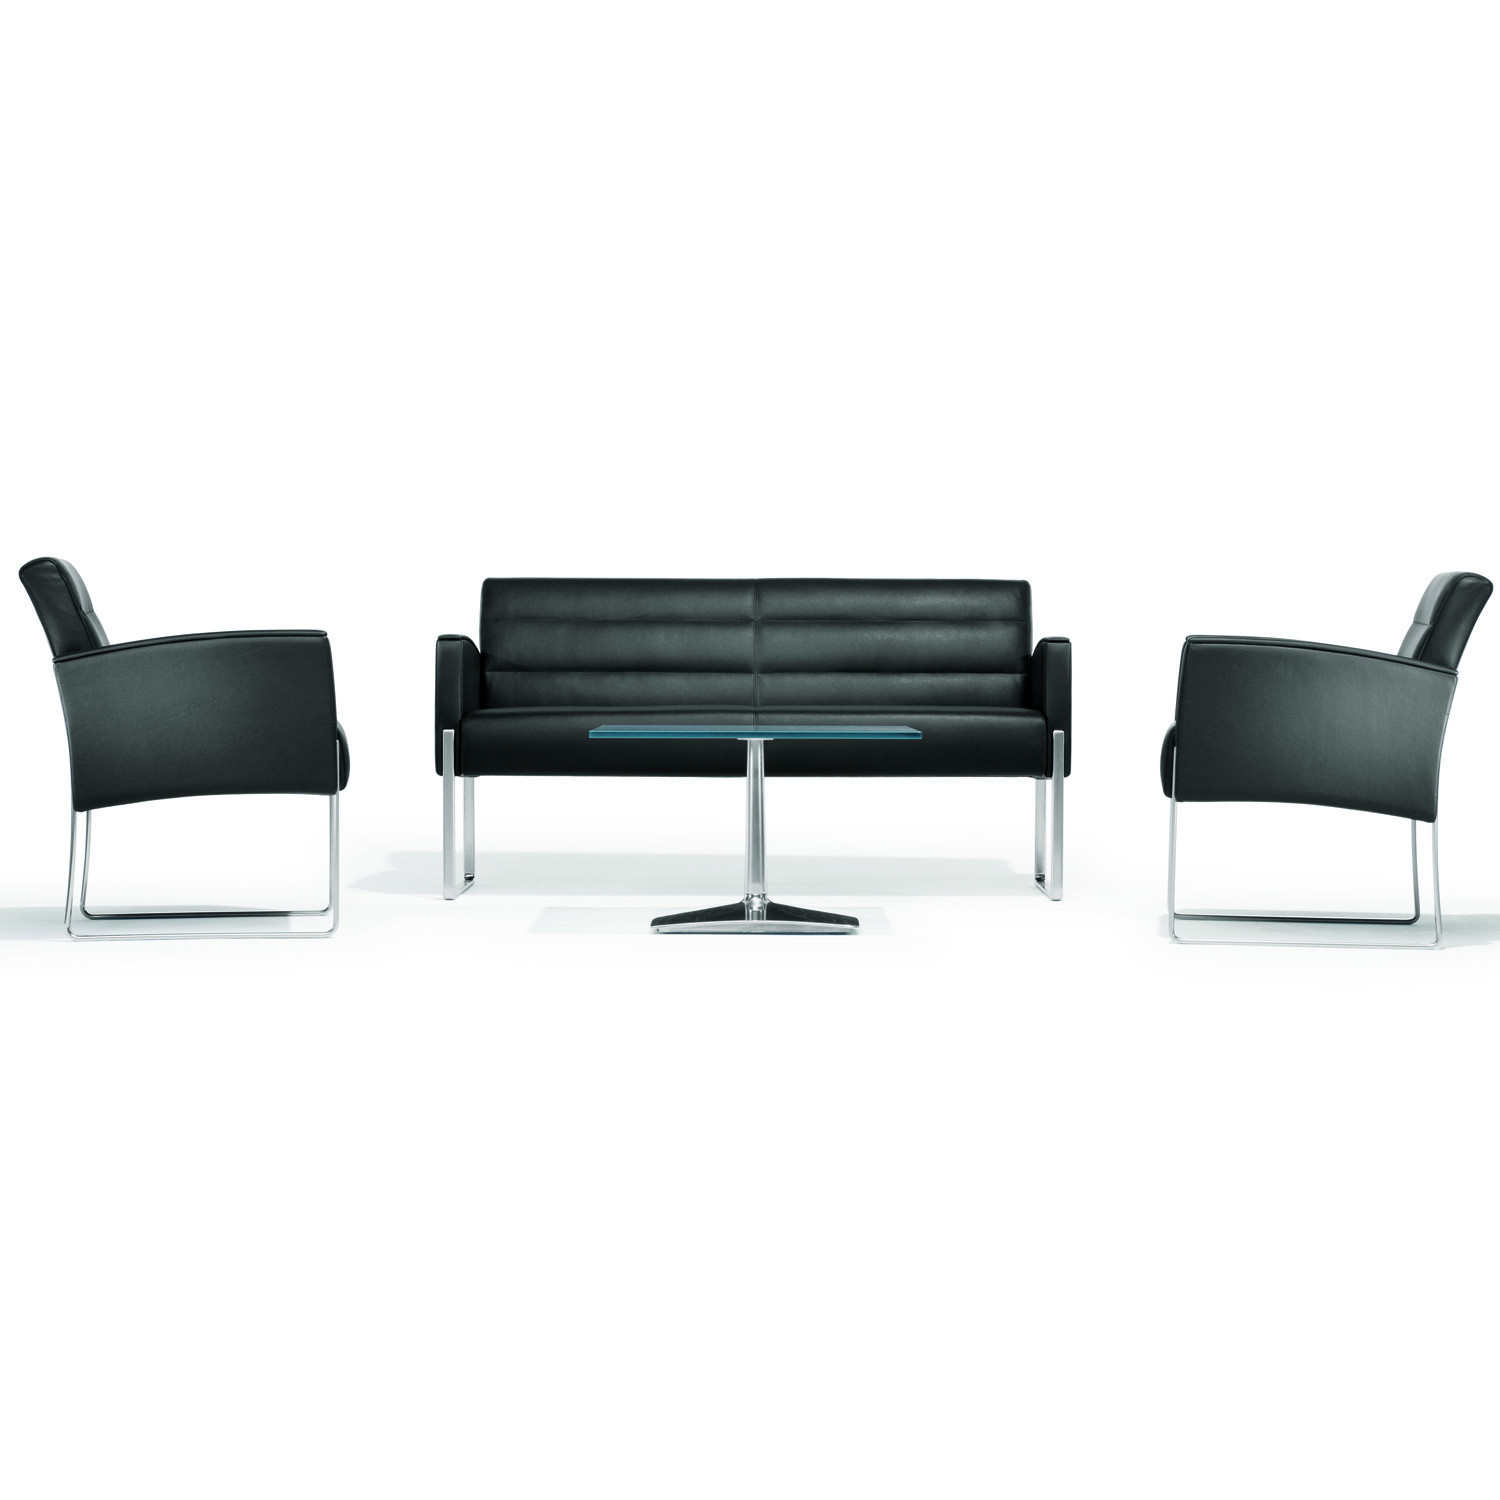 5070 Reception Seating designed by Dieter Kusch